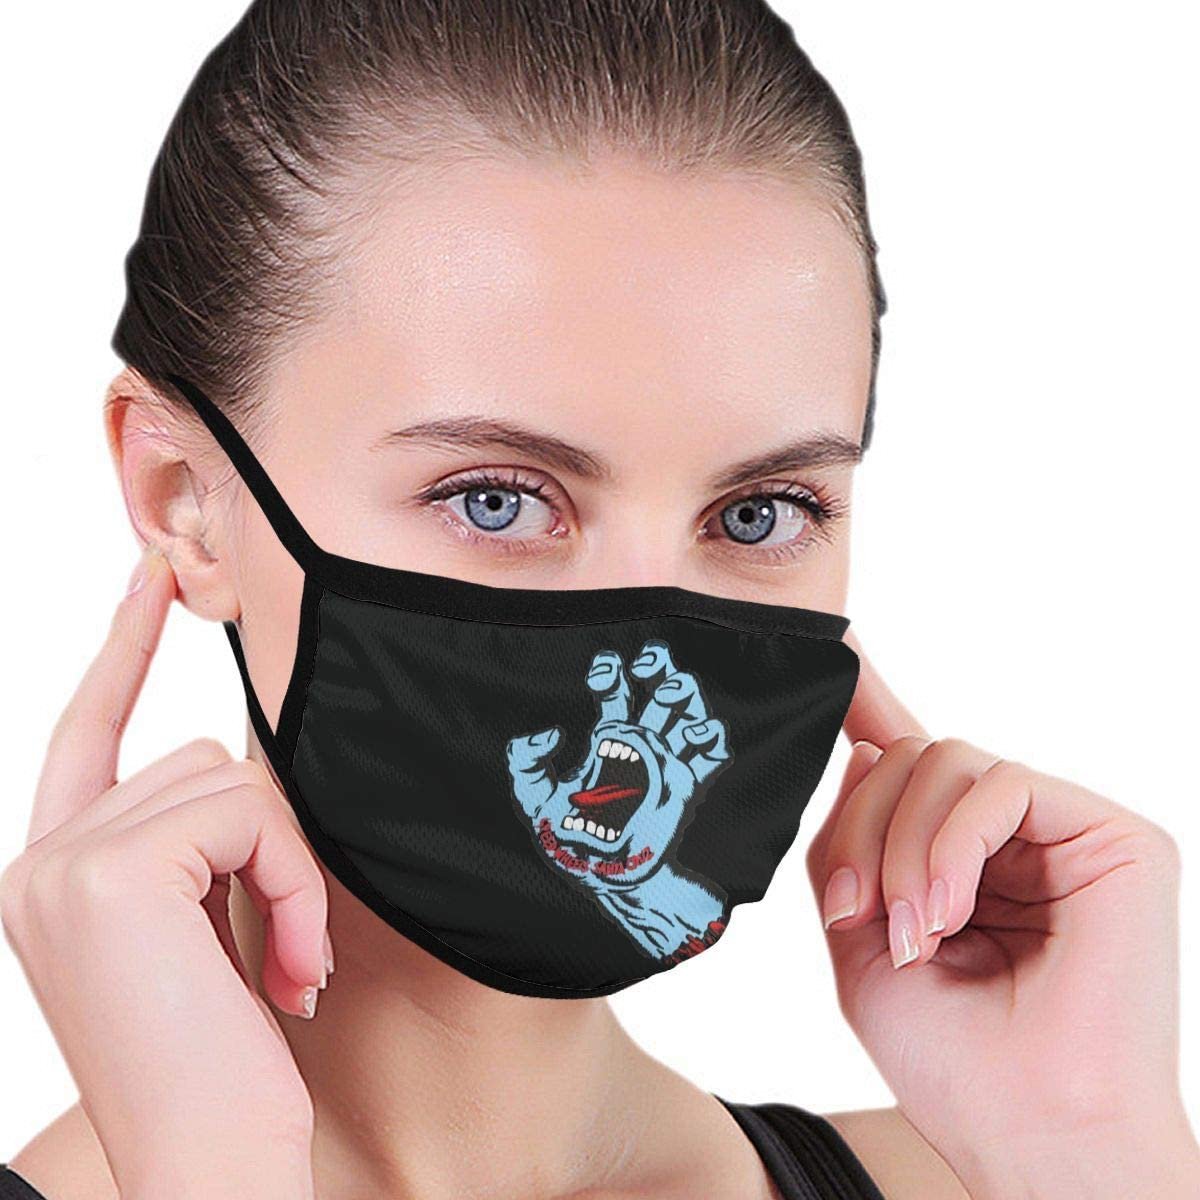 Zhengyu Santa Cruz Face Mouth Protect Comfy Breathable Safety Air Fog Outdoor Fashion Half Face Face Protections - for Man and Woman